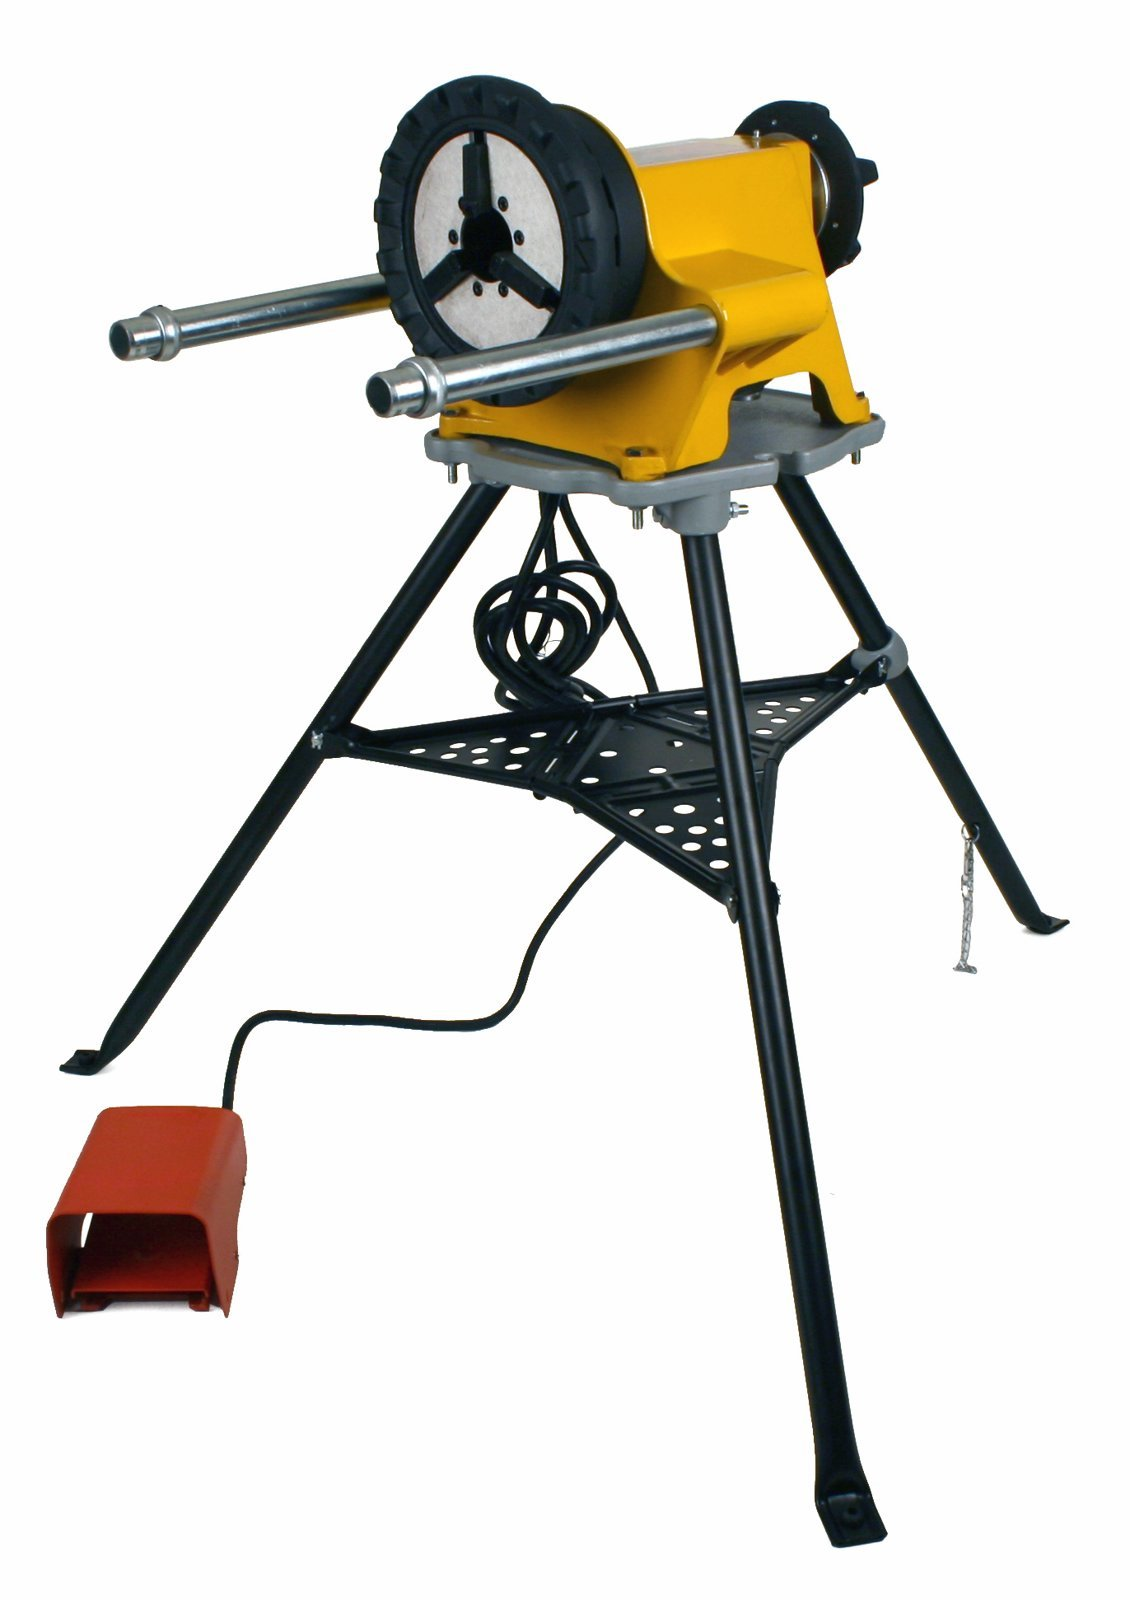 Steel Dragon Tools 300 Power Drive and 1206 Stand for Roll Grooving or Pipe Threading fits RIDGID 41855 42360